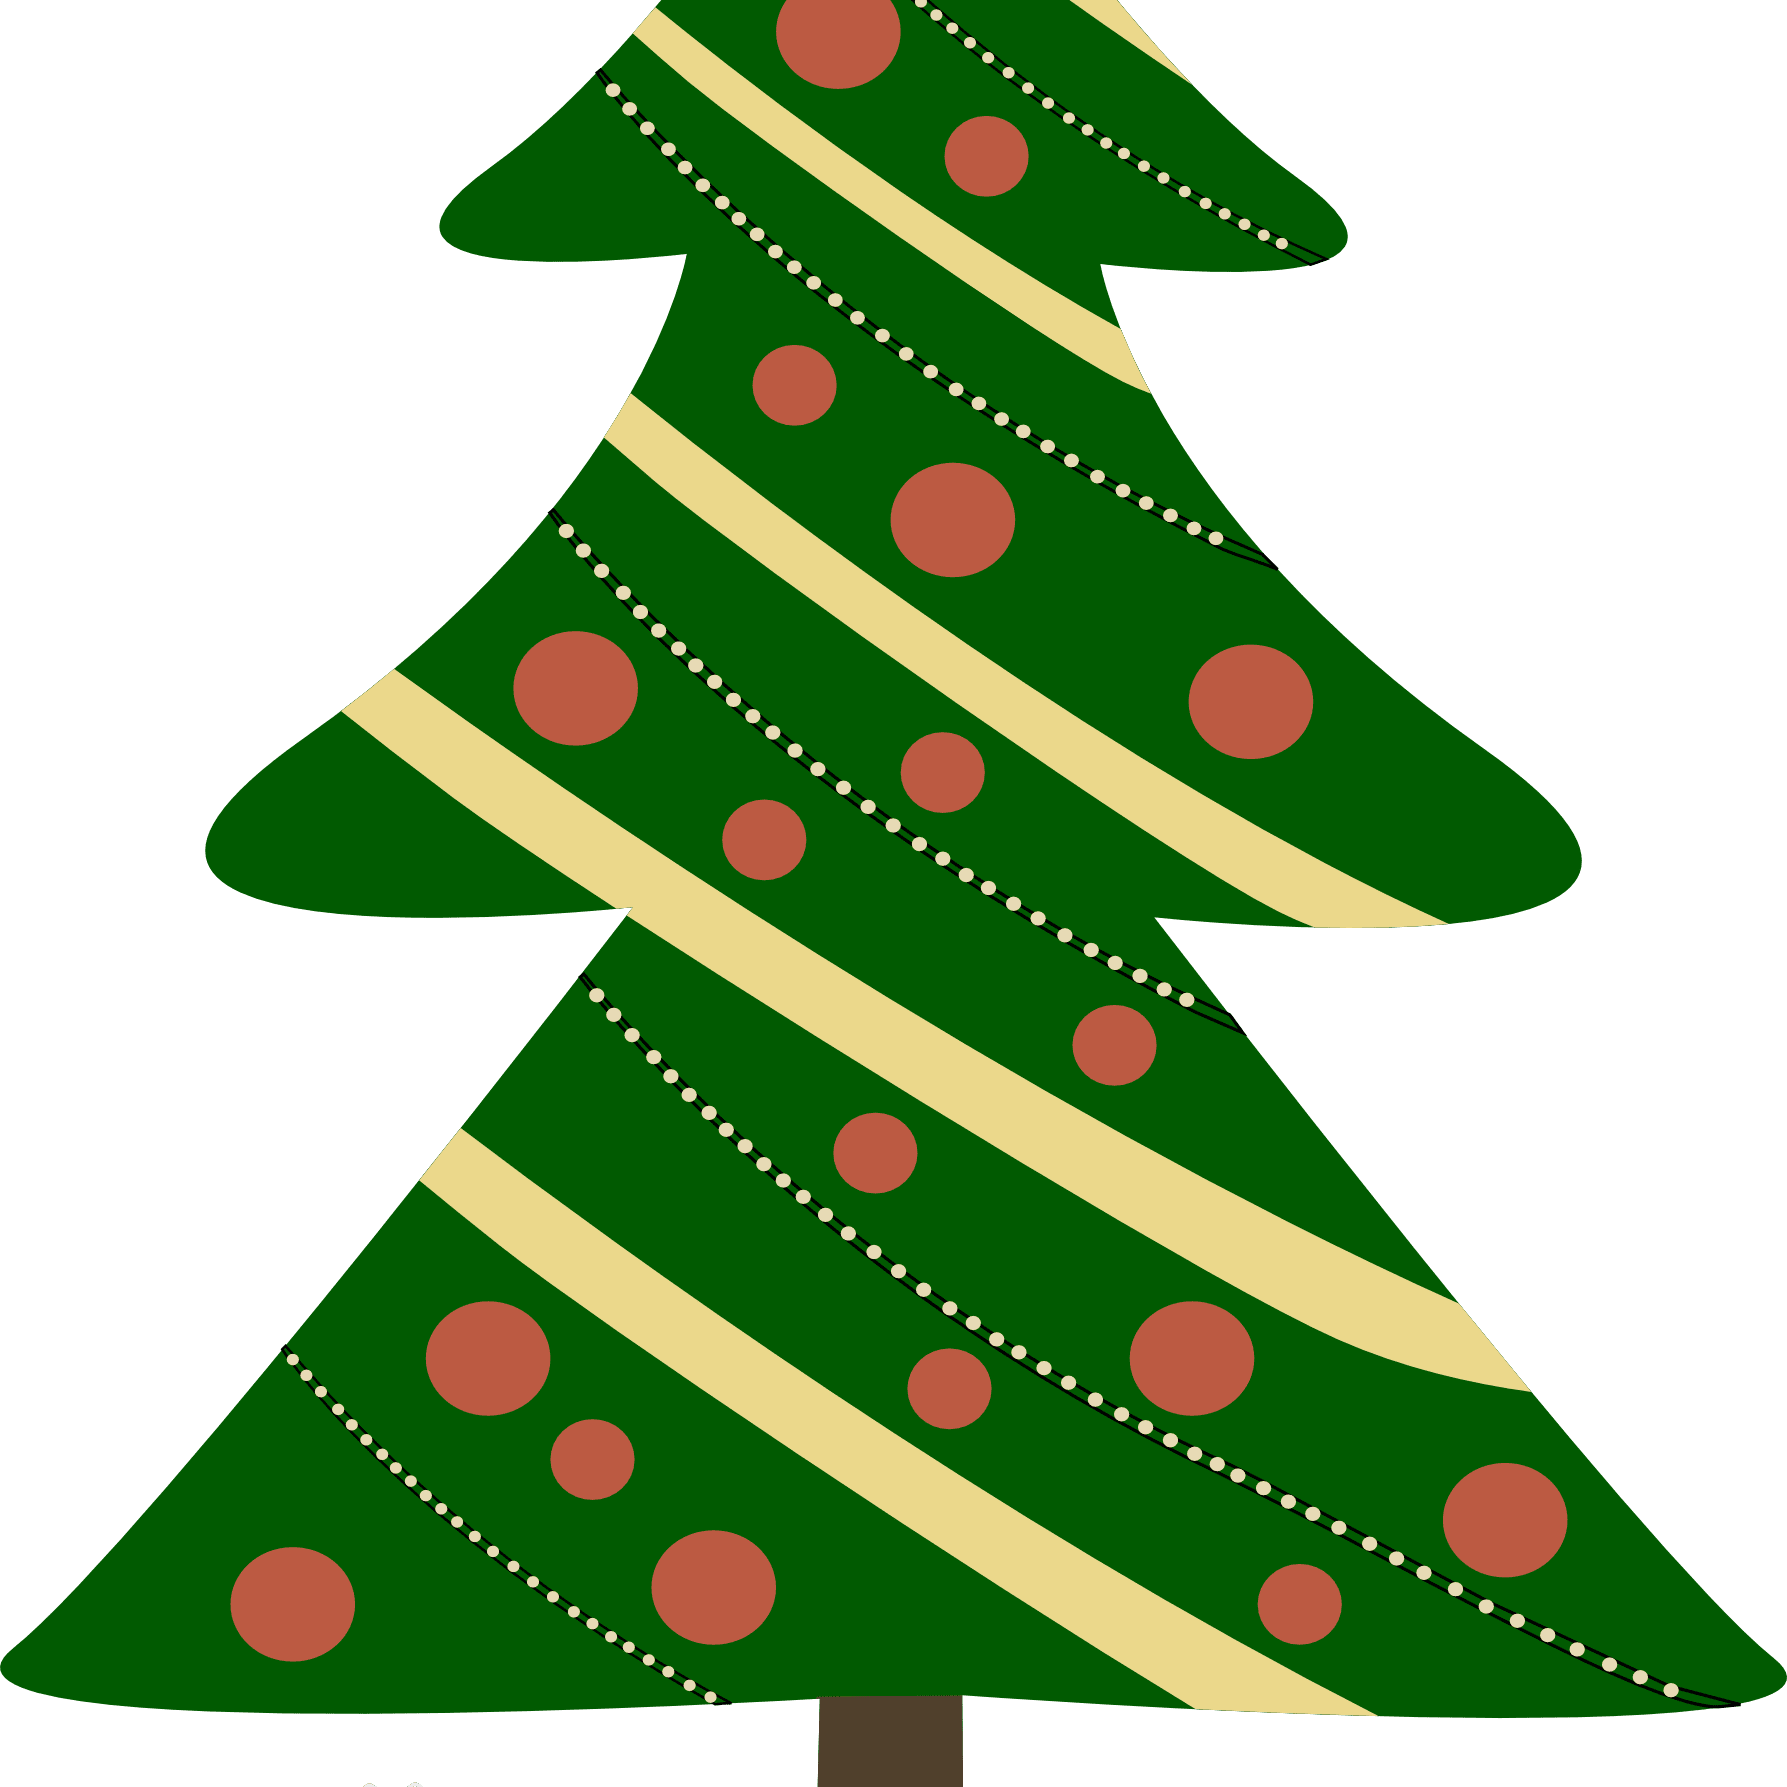 Christmas Tree Cliparts: 297 Free Christmas Tree Clip Art Images